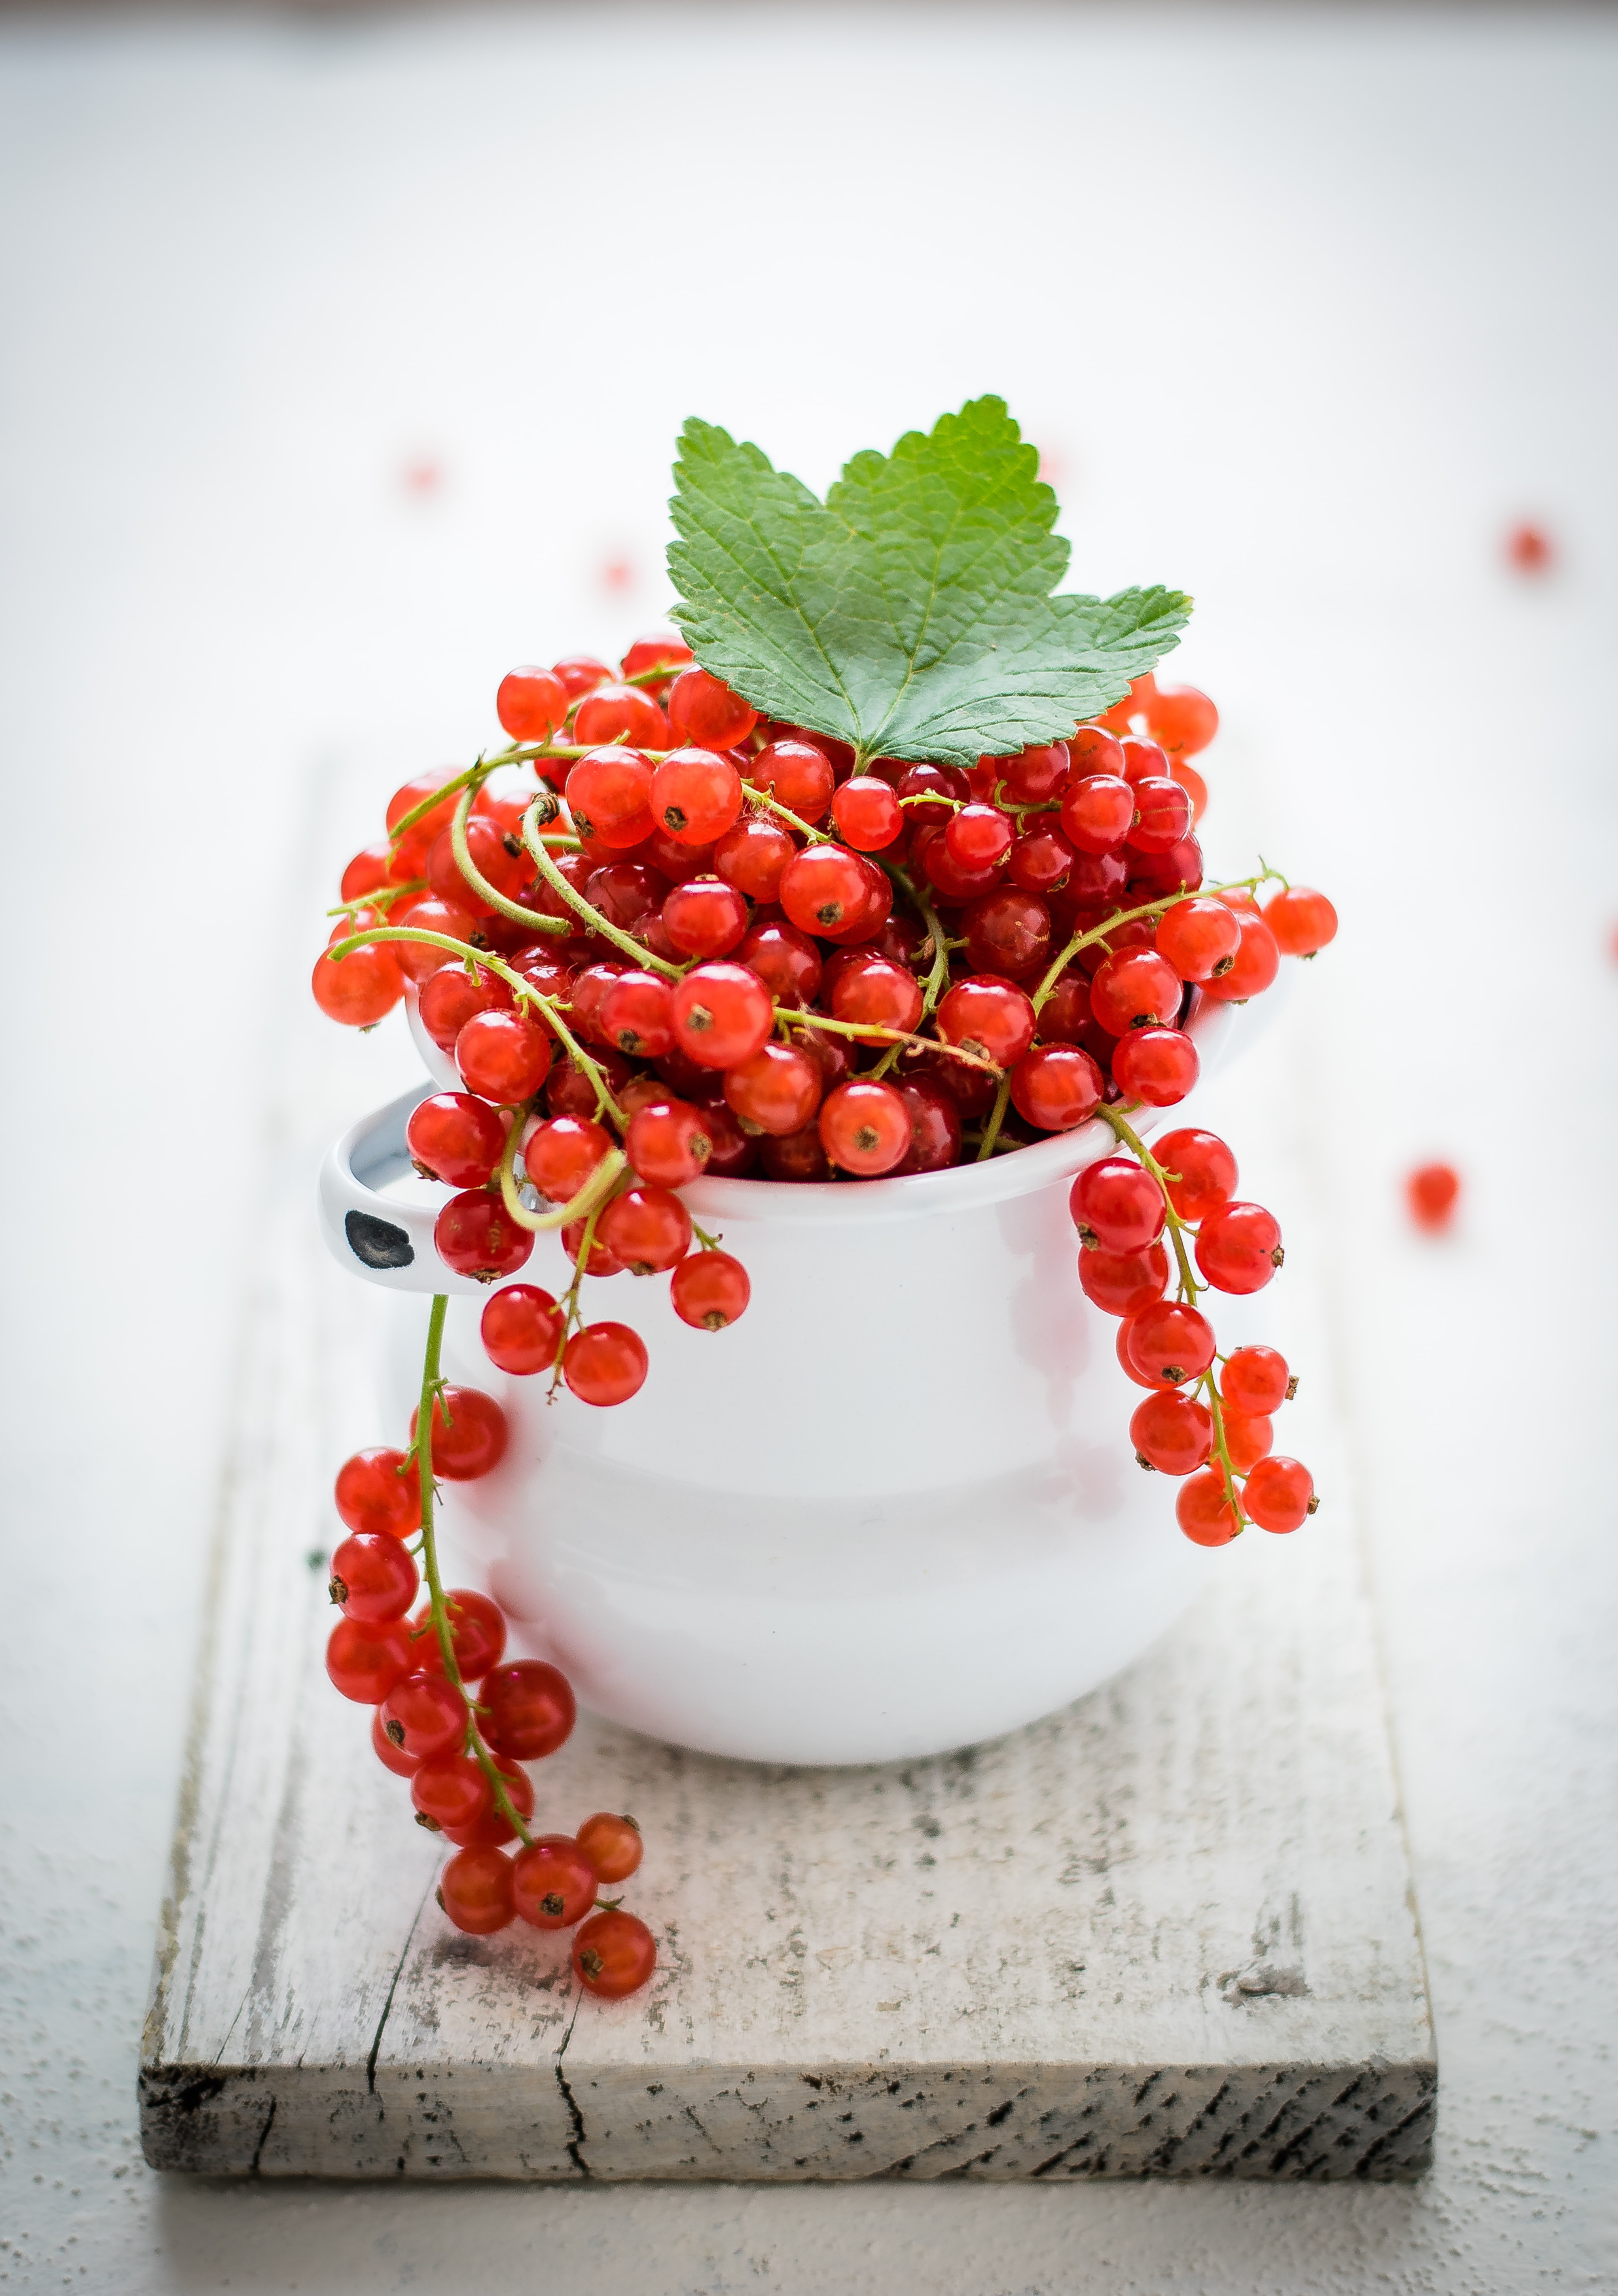 white ceramic bowl filled with red fruits